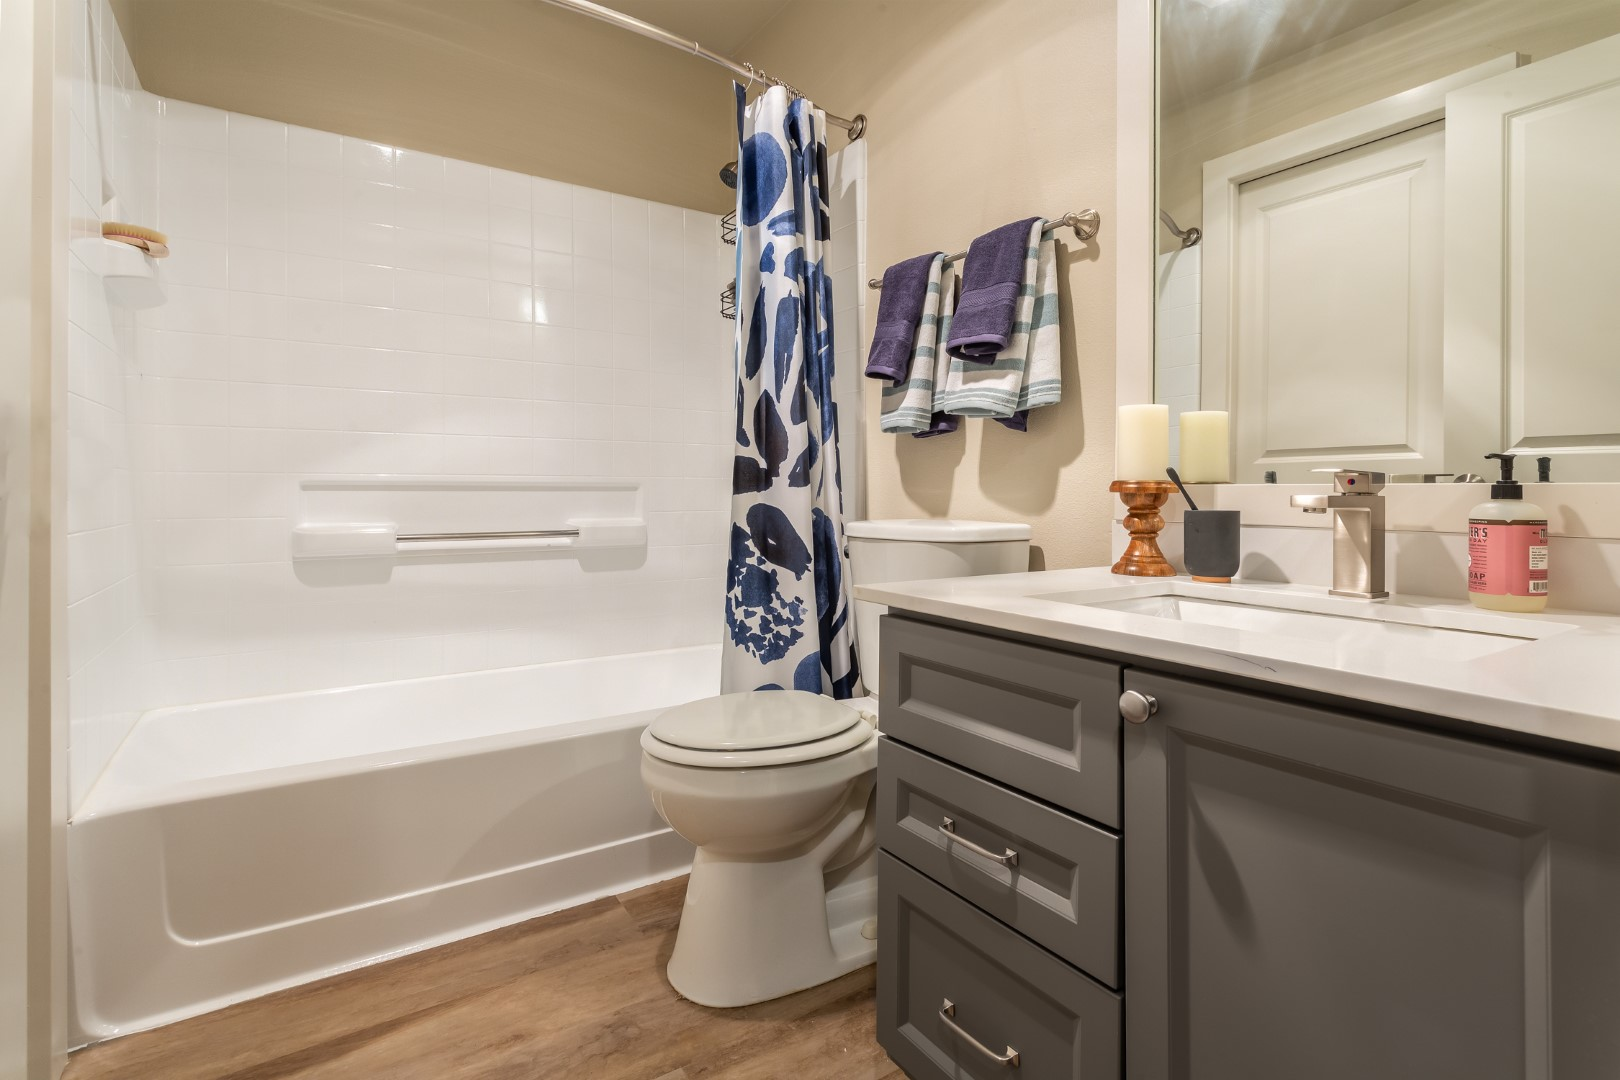 The shower curtain is pulled back to show the tub and shower surround.